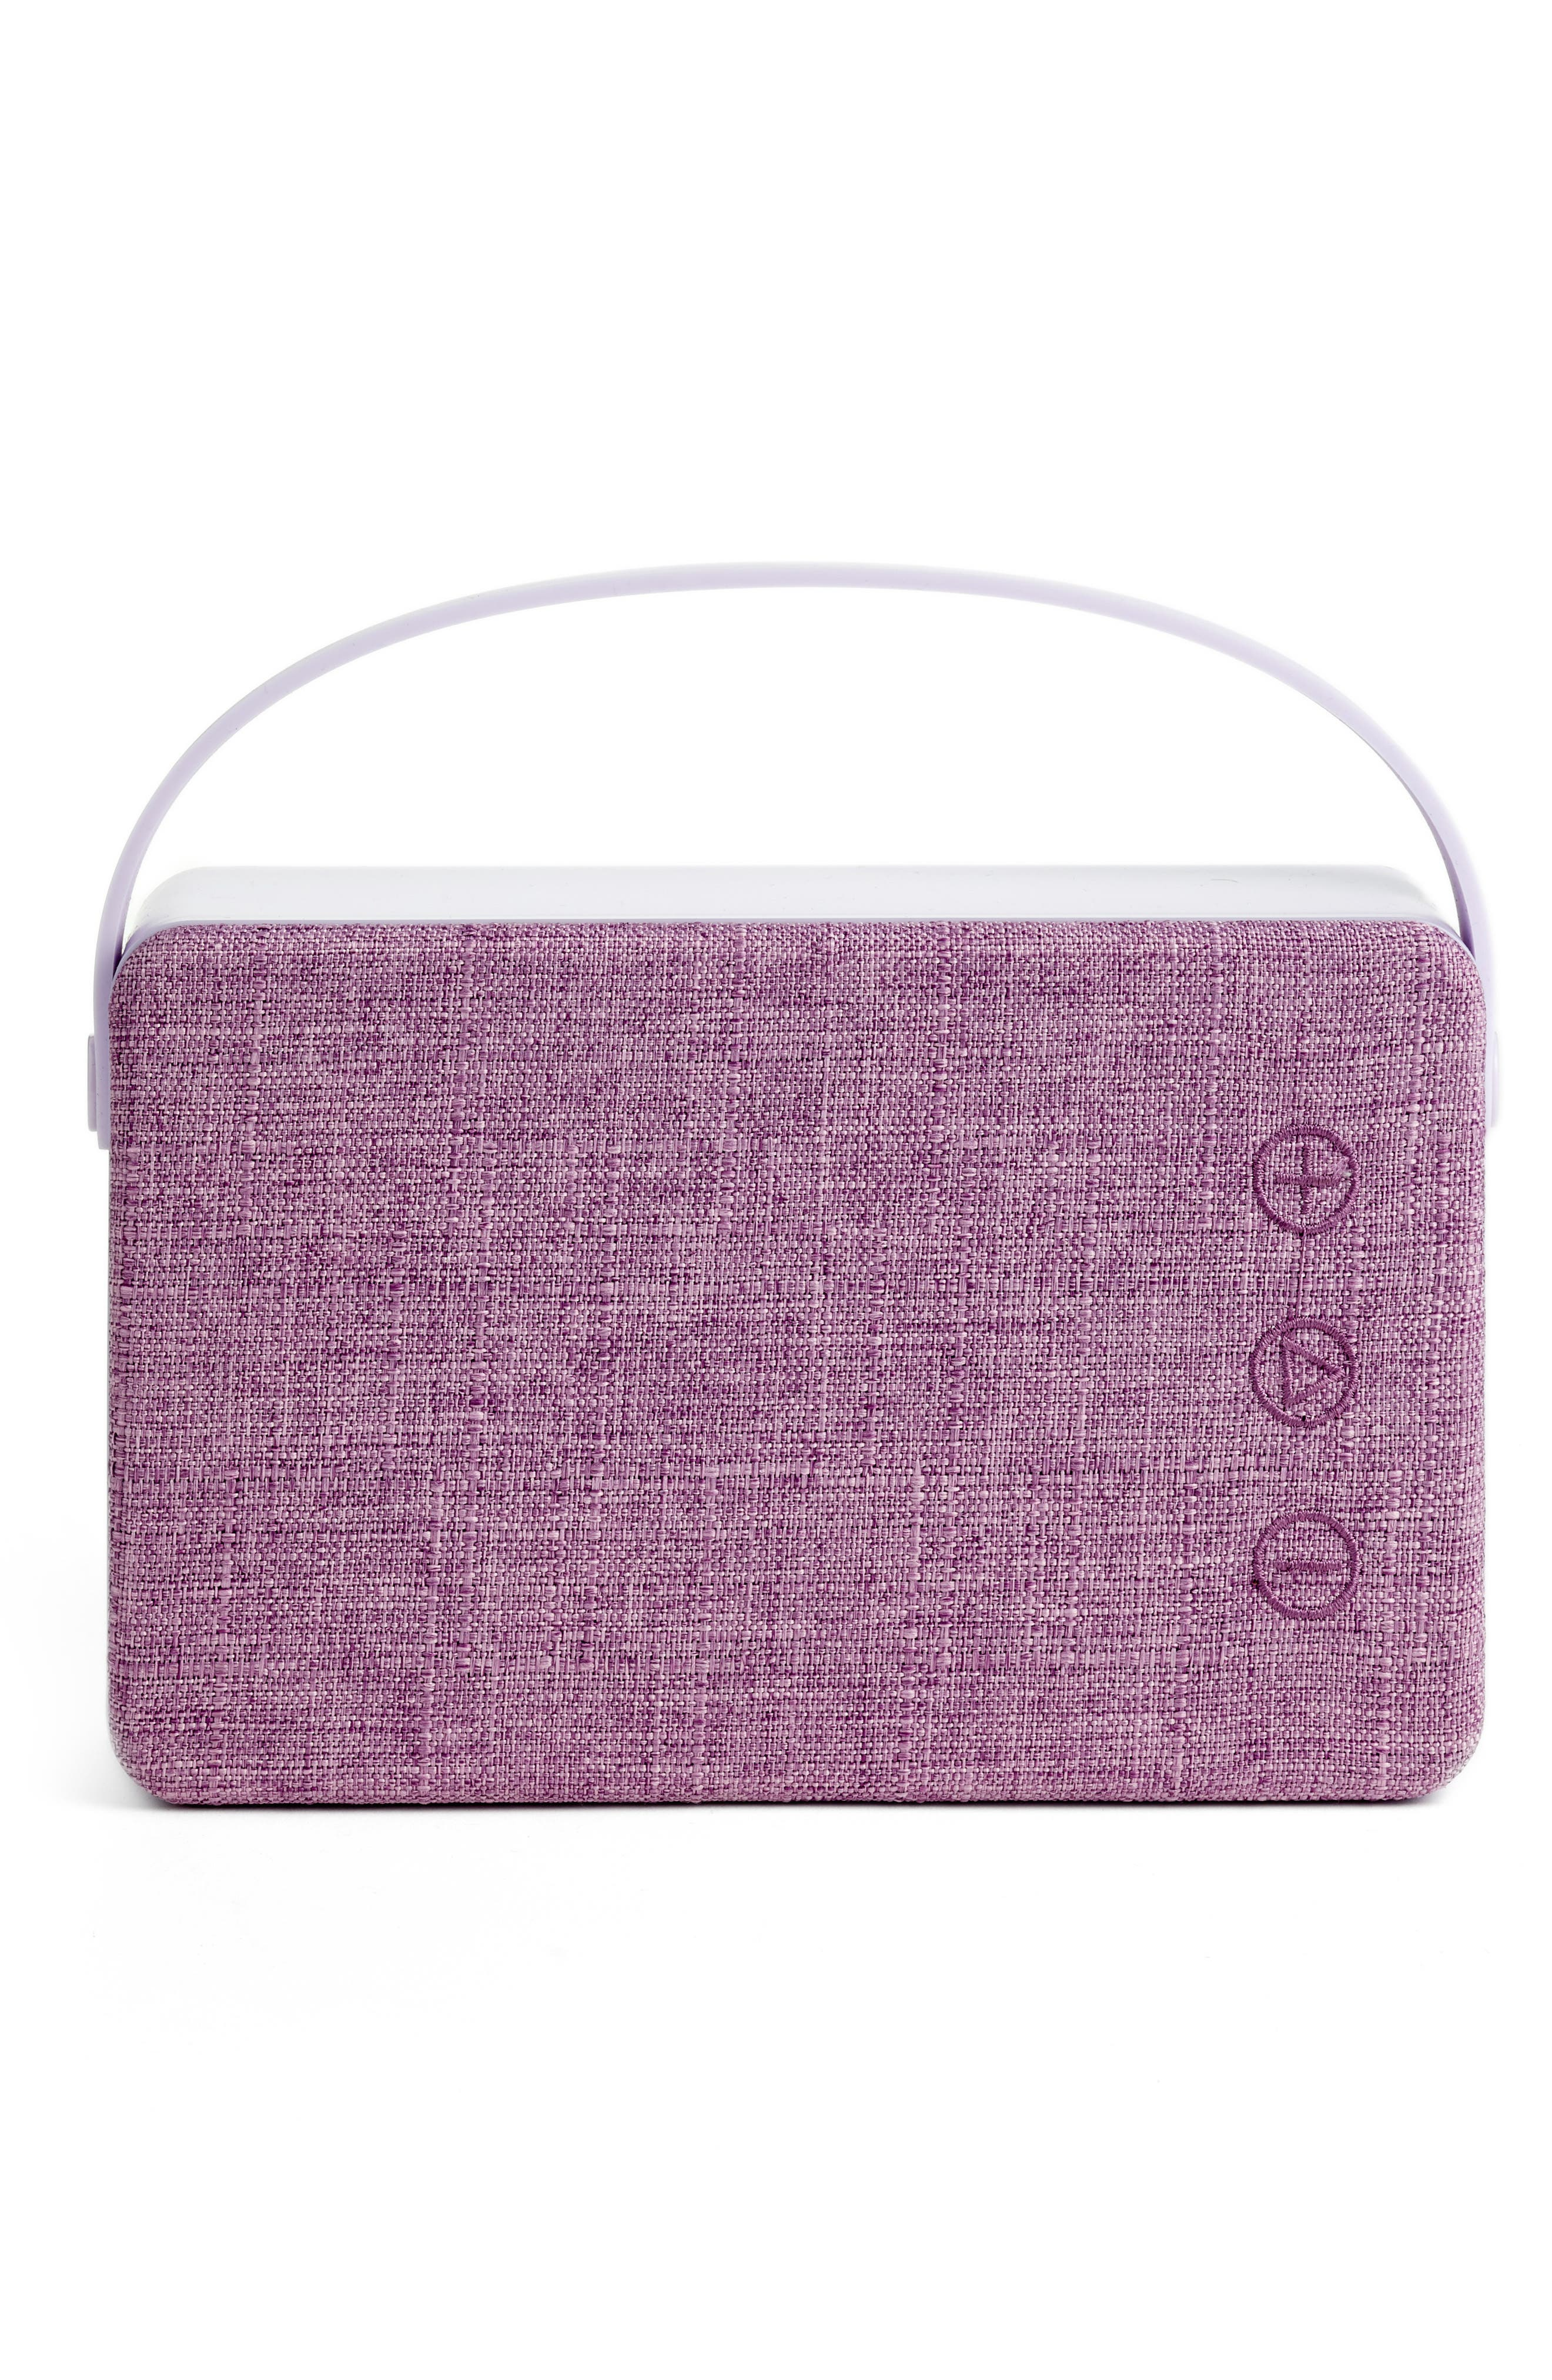 Alternate Image 1 Selected - Gabba Goods Wireless Bluetooth Speaker (Nordstrom Exclusive)